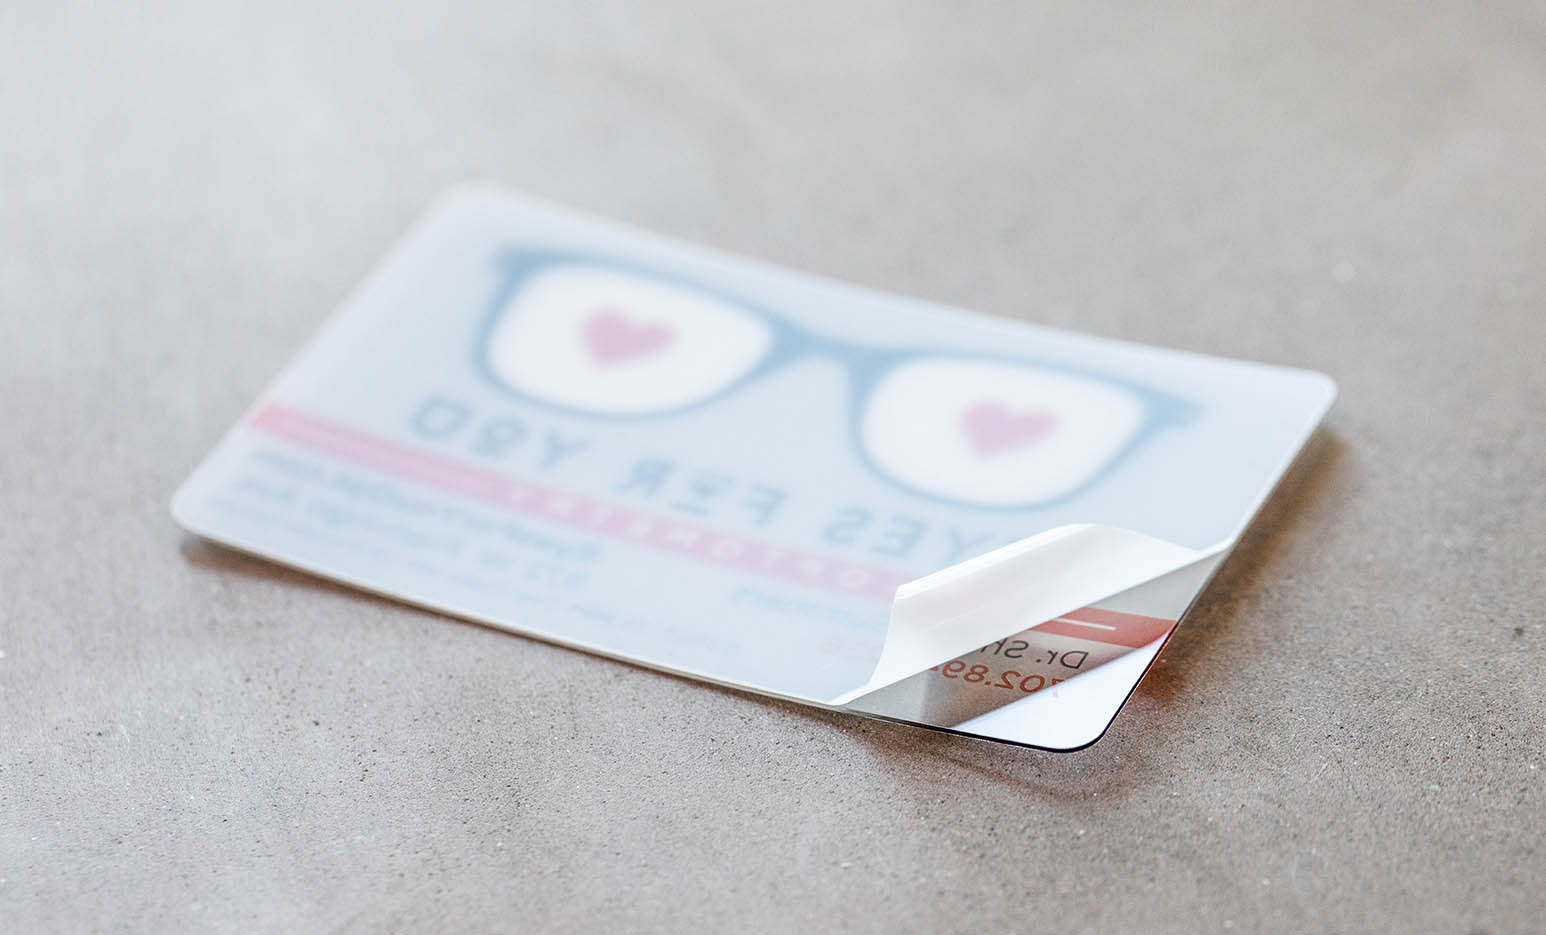 All our Clear Plastic Business Cards come with a protective film to prevent them from scratching during production and/or shipping.